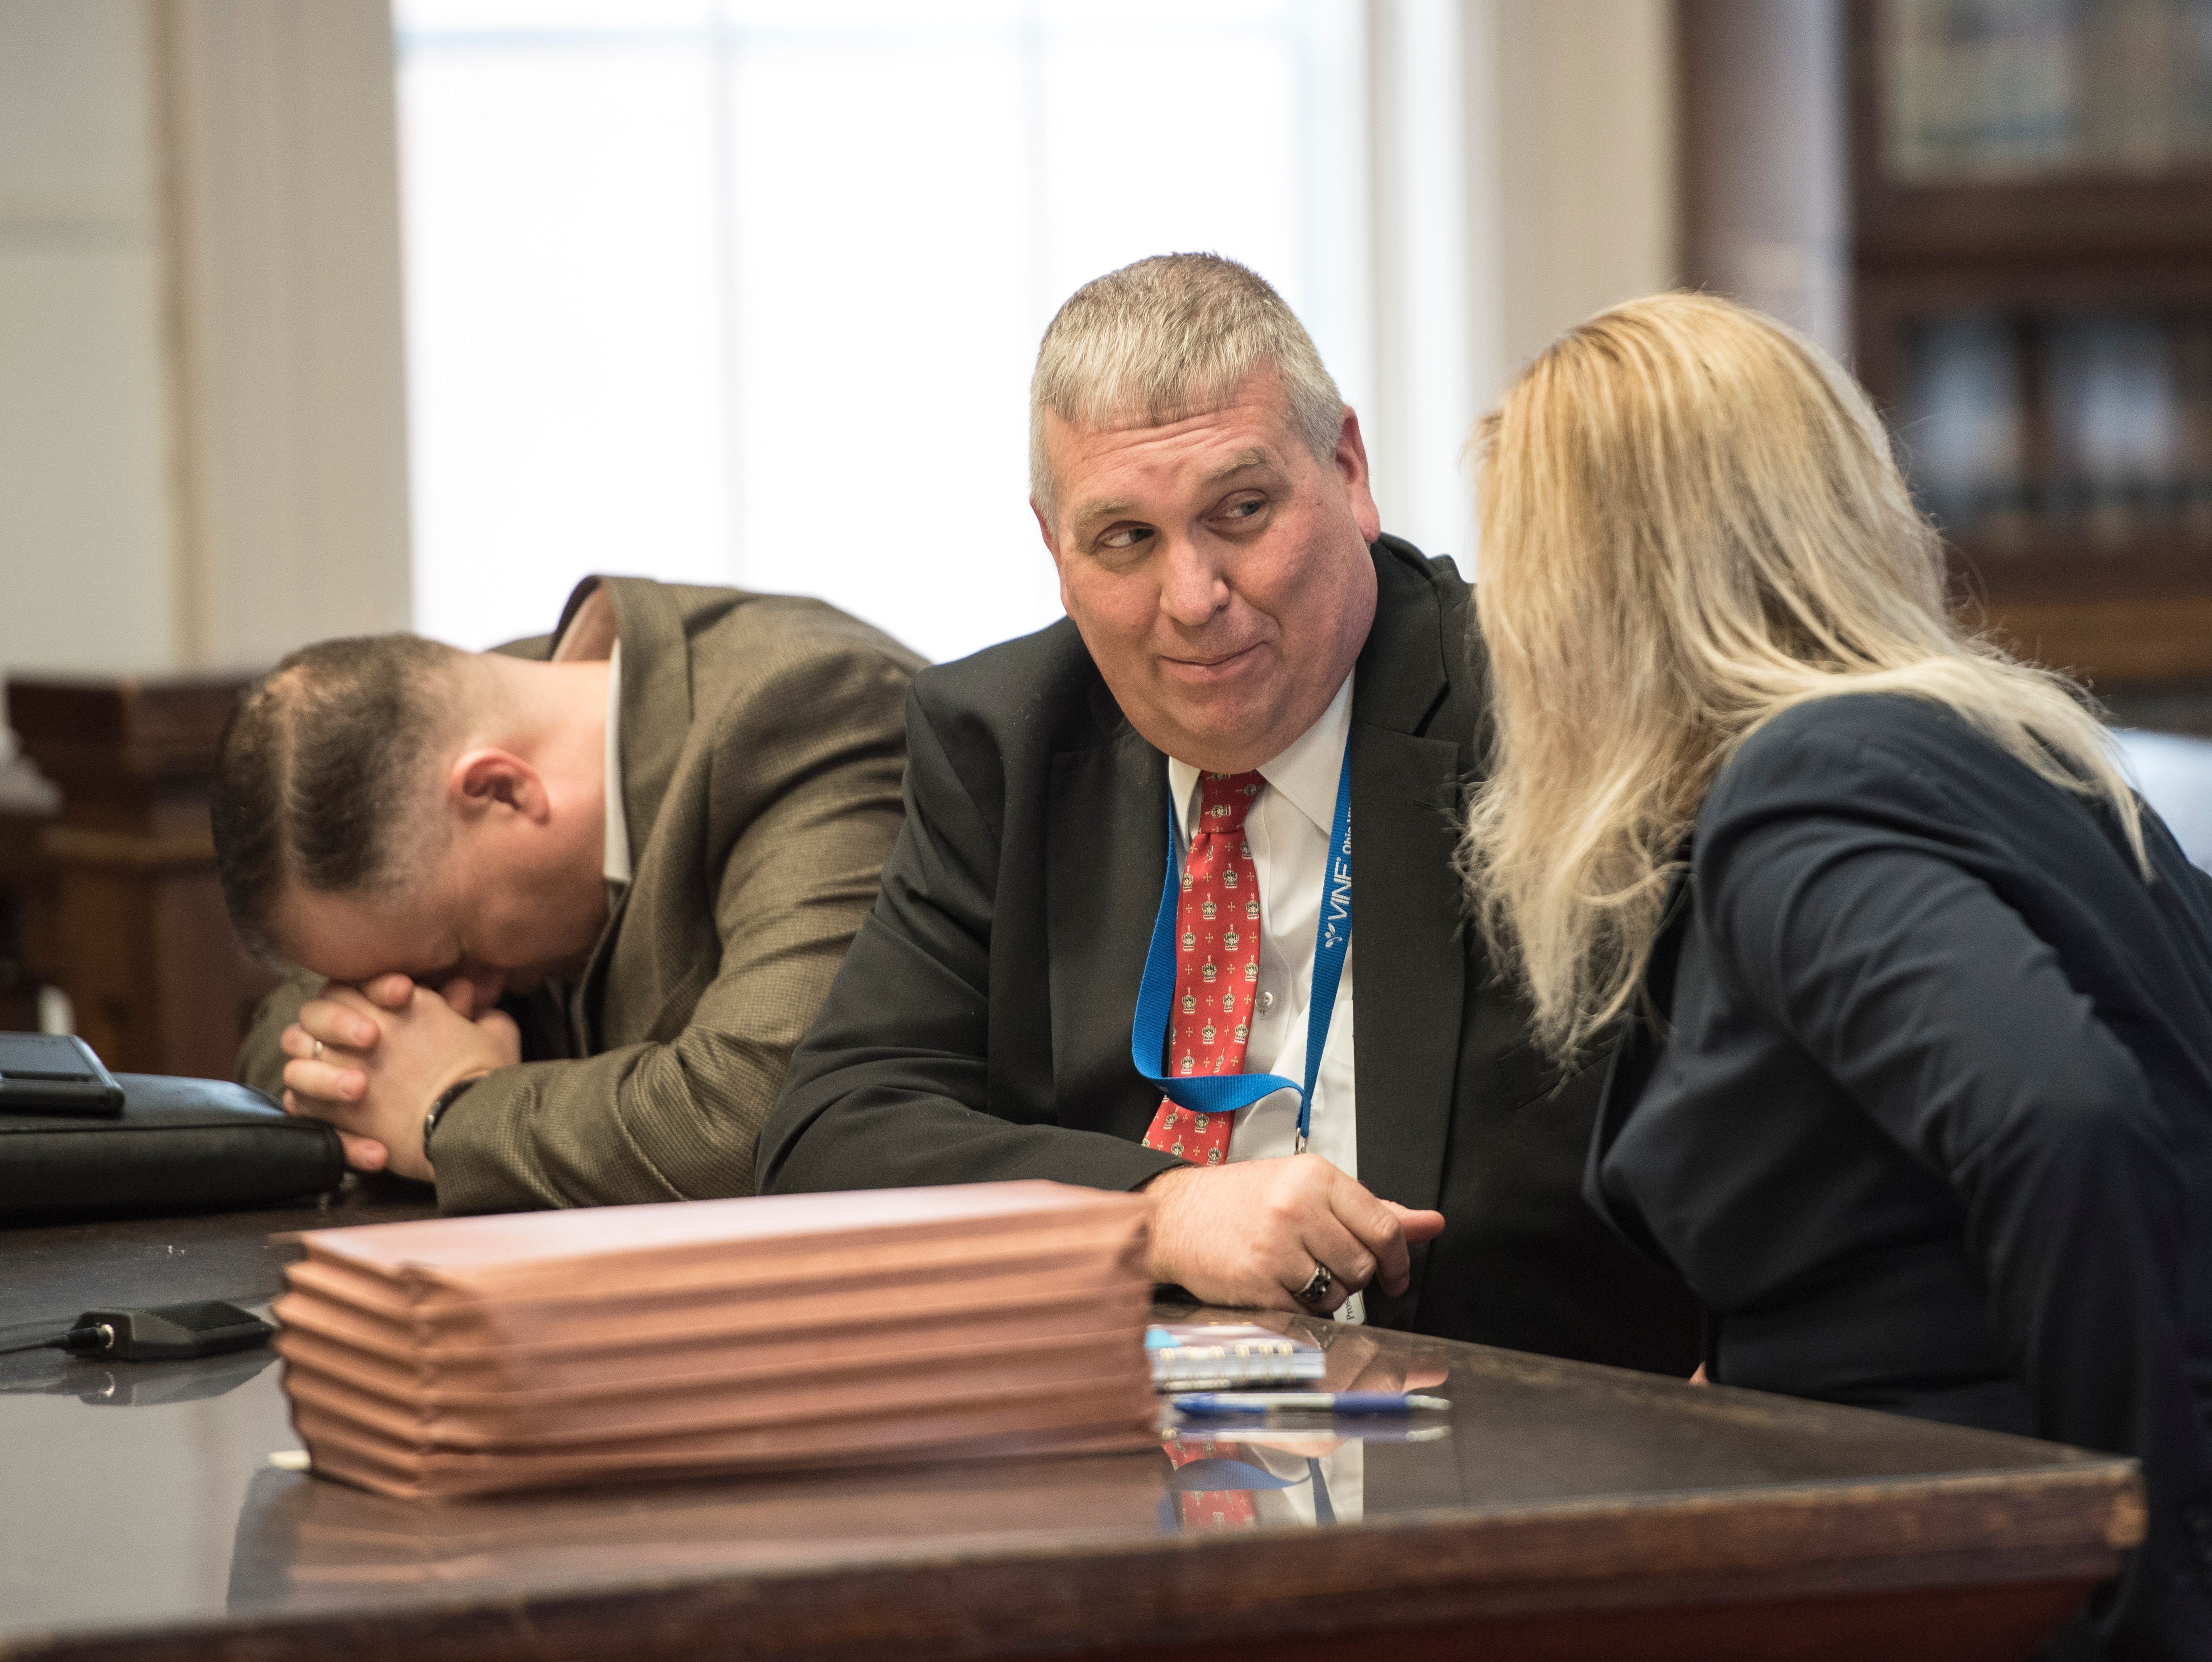 A BCI agent, left, lays his head down as Special Prosecutor Angie Canepa talks with Pike County Prosecutor Rob Junk before Rita Newcomb's pretrial hearing on March 28, 2019. Newcomb, 65, of South Webster, is accused of perjury and obstructing justice for allegedly misleading investigators concerning the deaths of the eight members of the Rhoden family in 2016 and is also charged with forging custody documents to cover up the crimes.